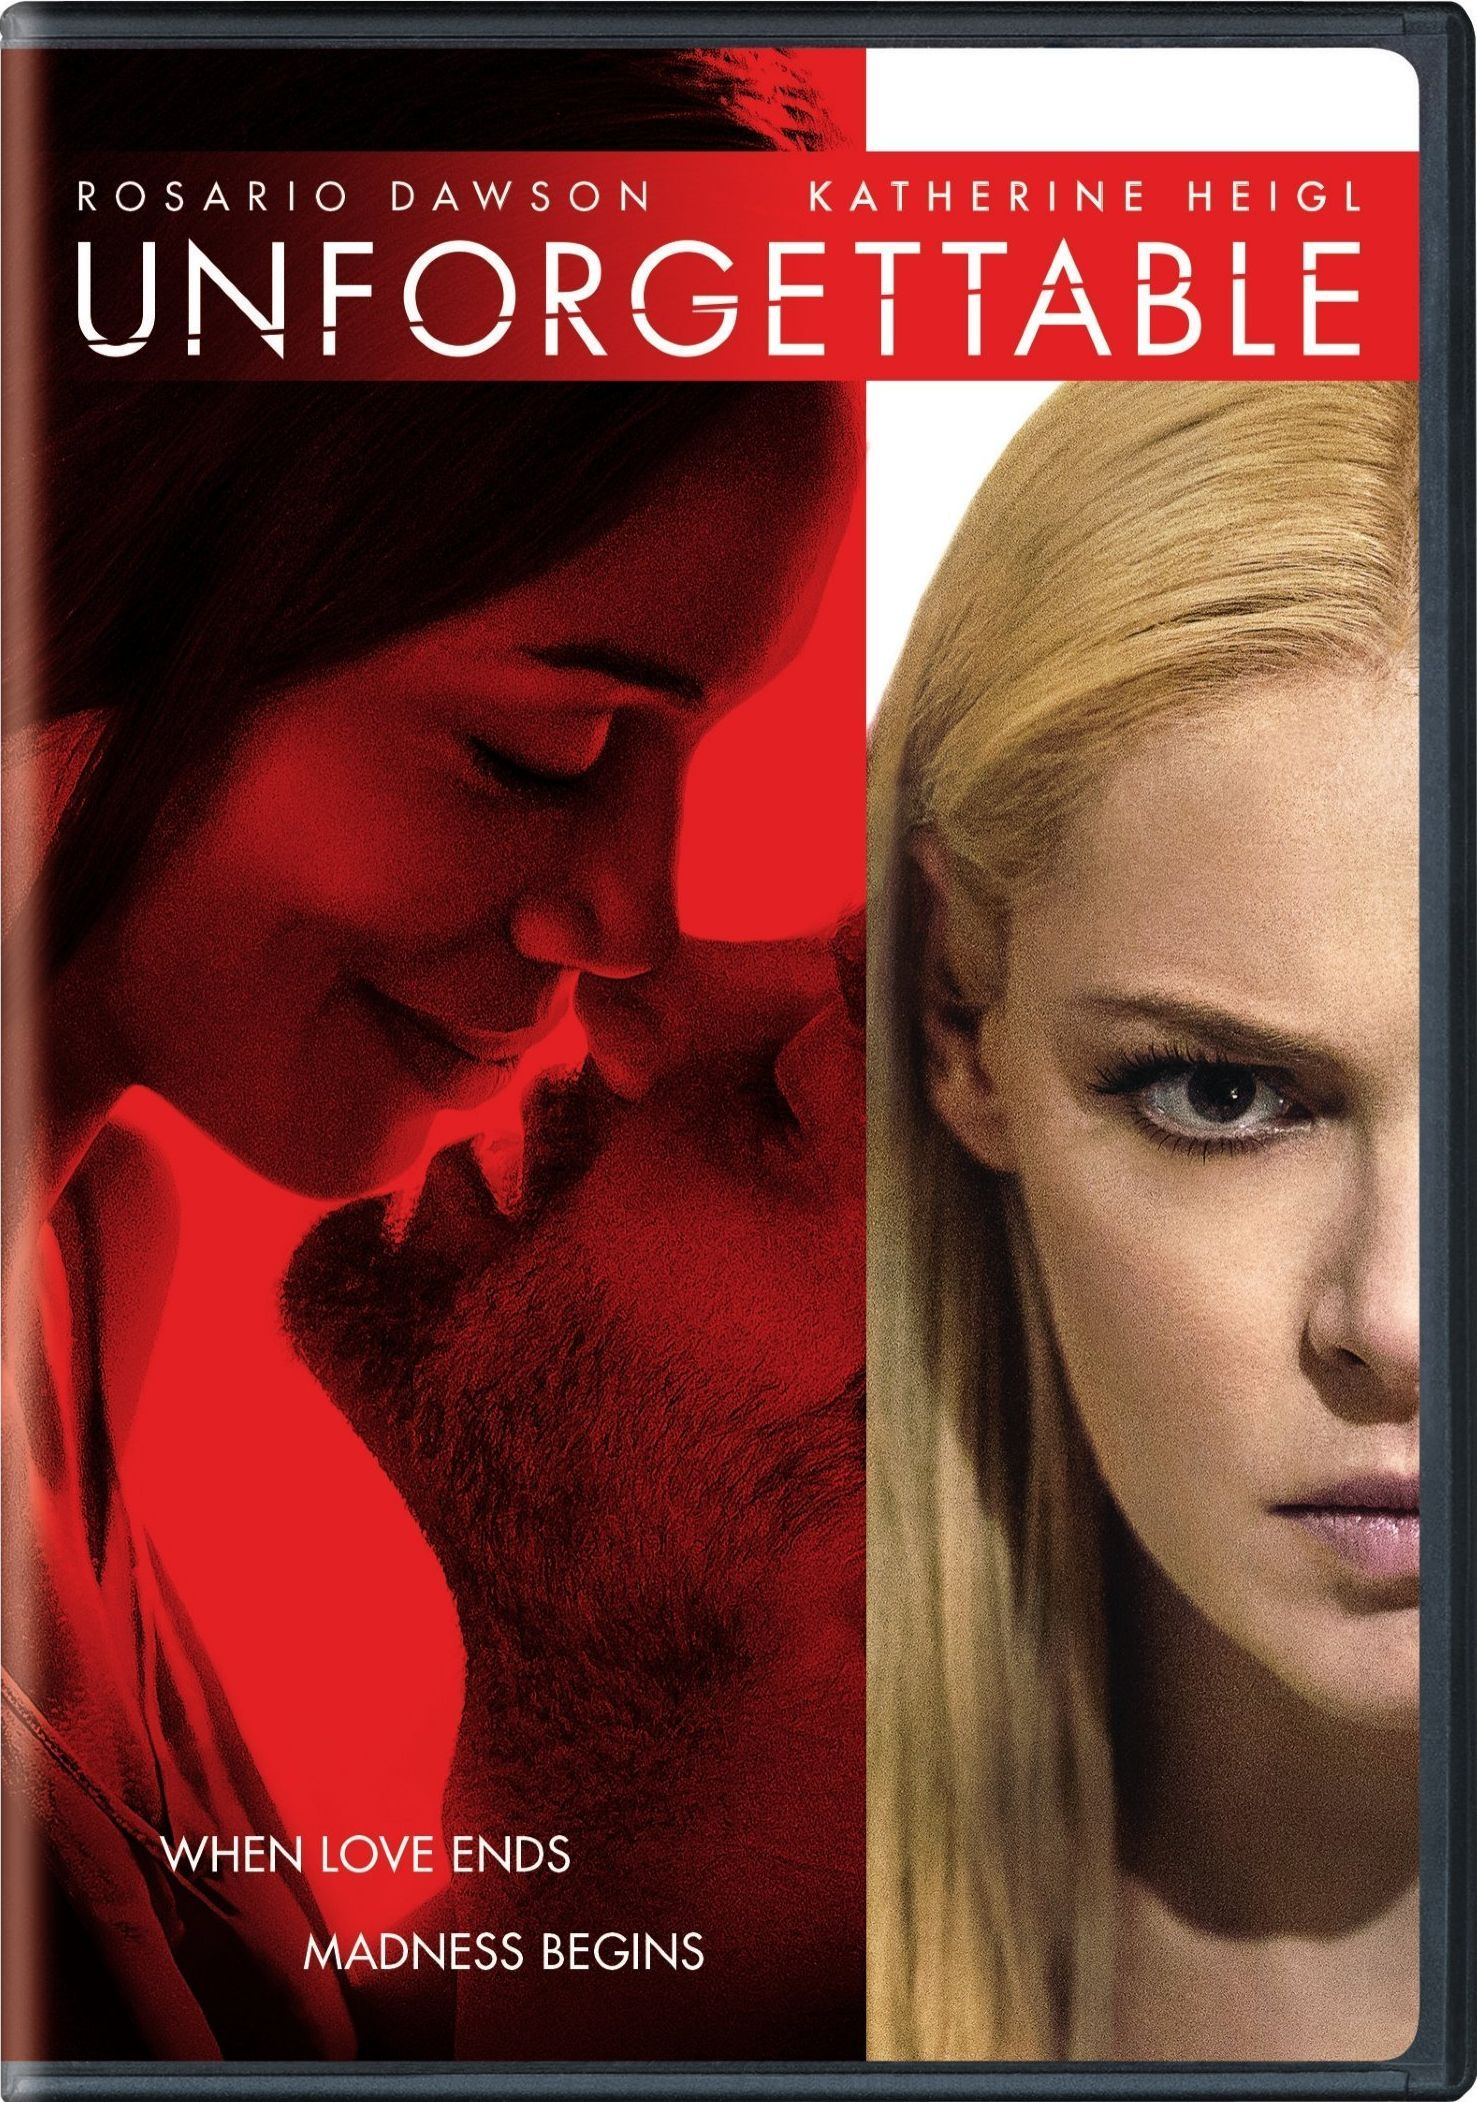 Unforgettable Filmes Completos Online Gratis Katherine Heigl